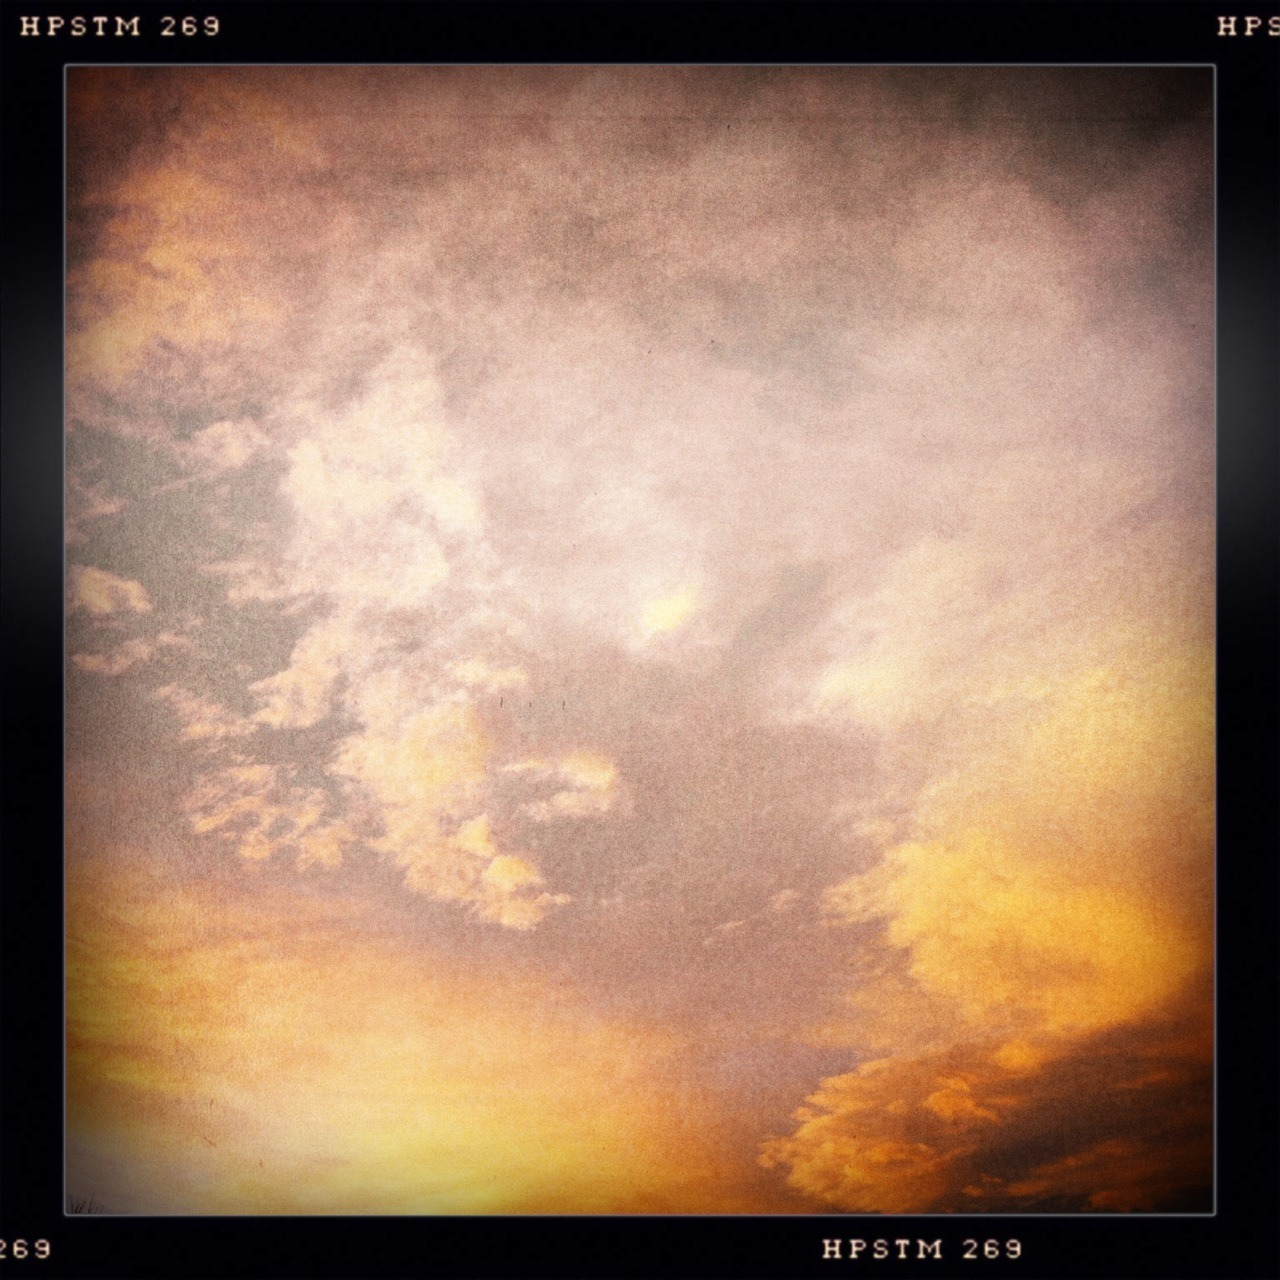 The Sky's on Fire II Taken with Hipstamatic, Libatique 73 Lens, Pistil Film, No Flash.